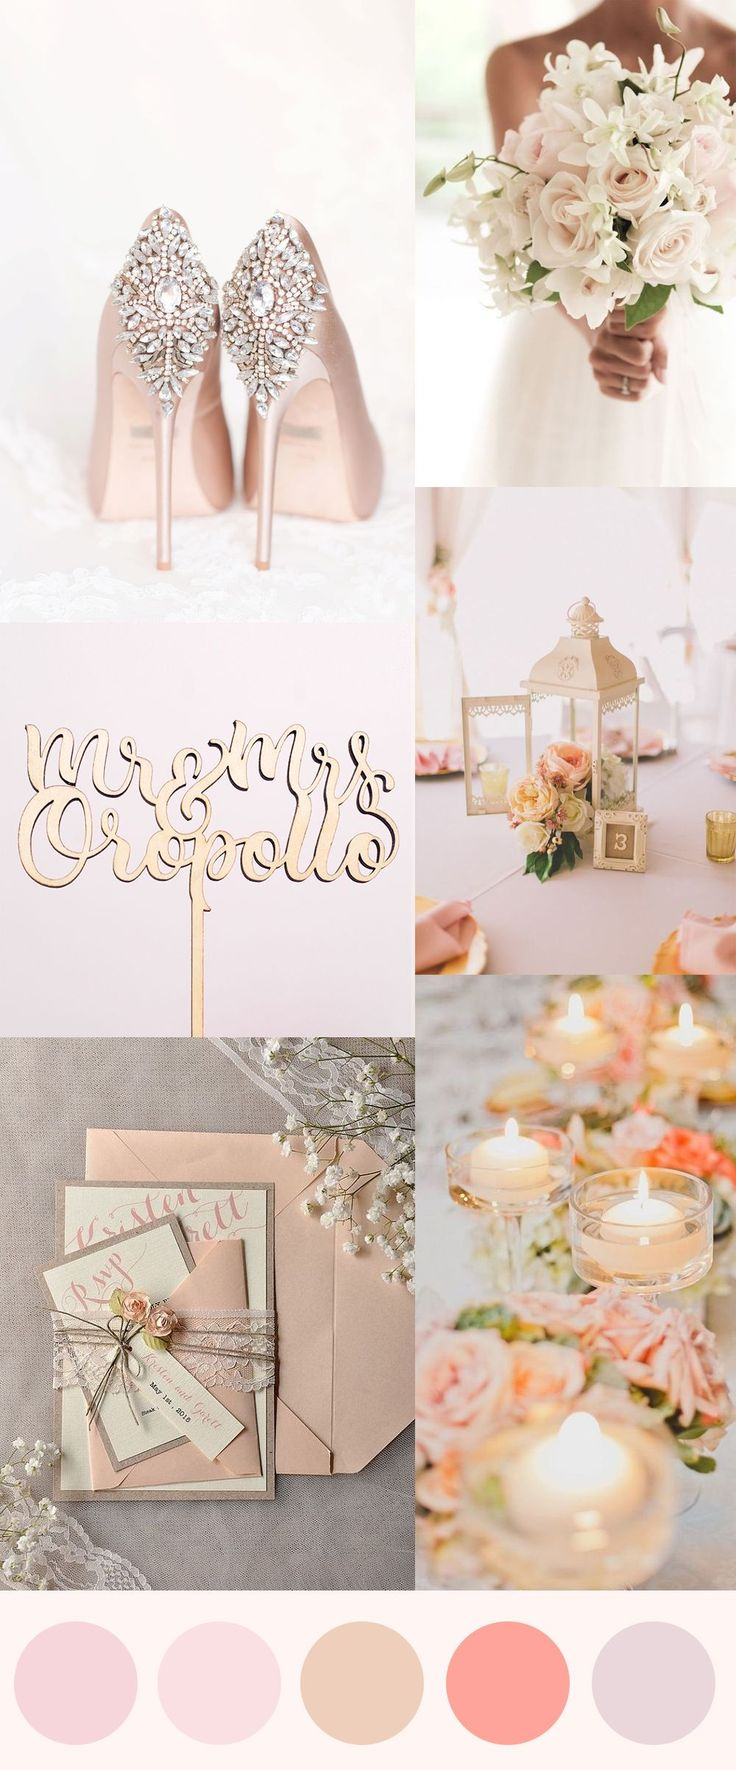 17 Best ideas about Peach Gold Weddings on Pinterest